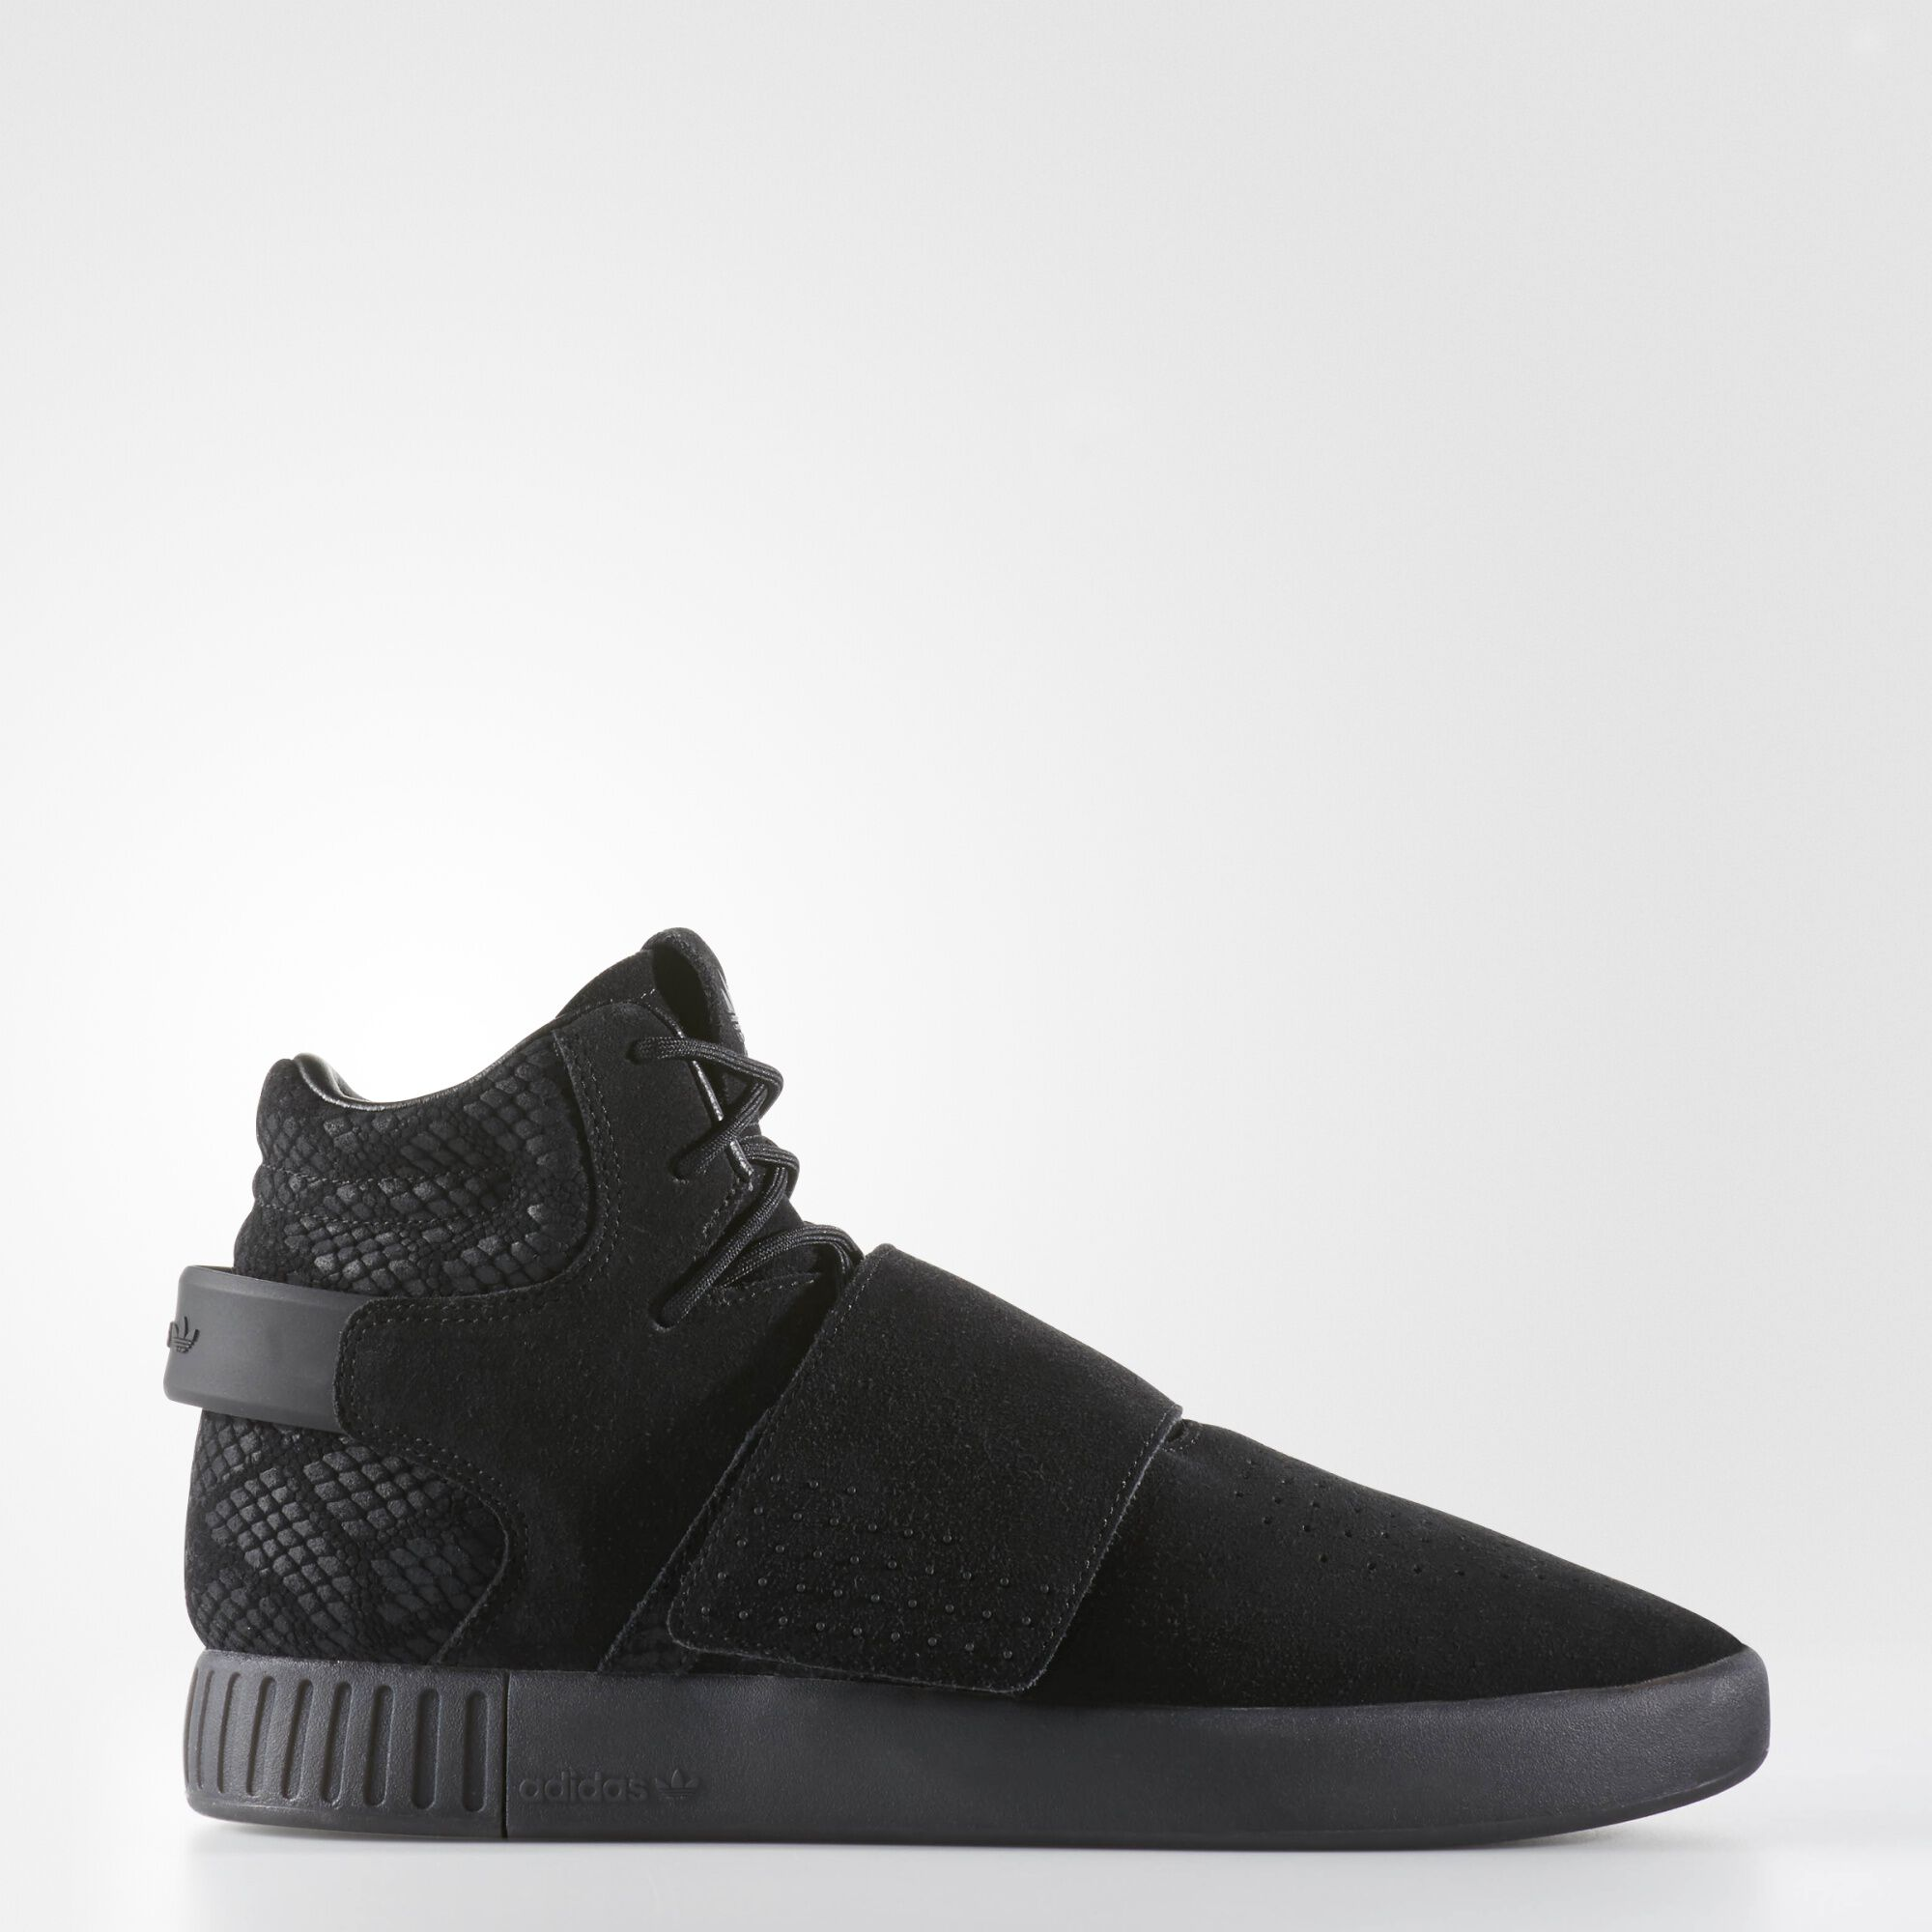 ADIDAS ORIGINALS JUNIOR TUBULAR INVADER STRAP Sportscene